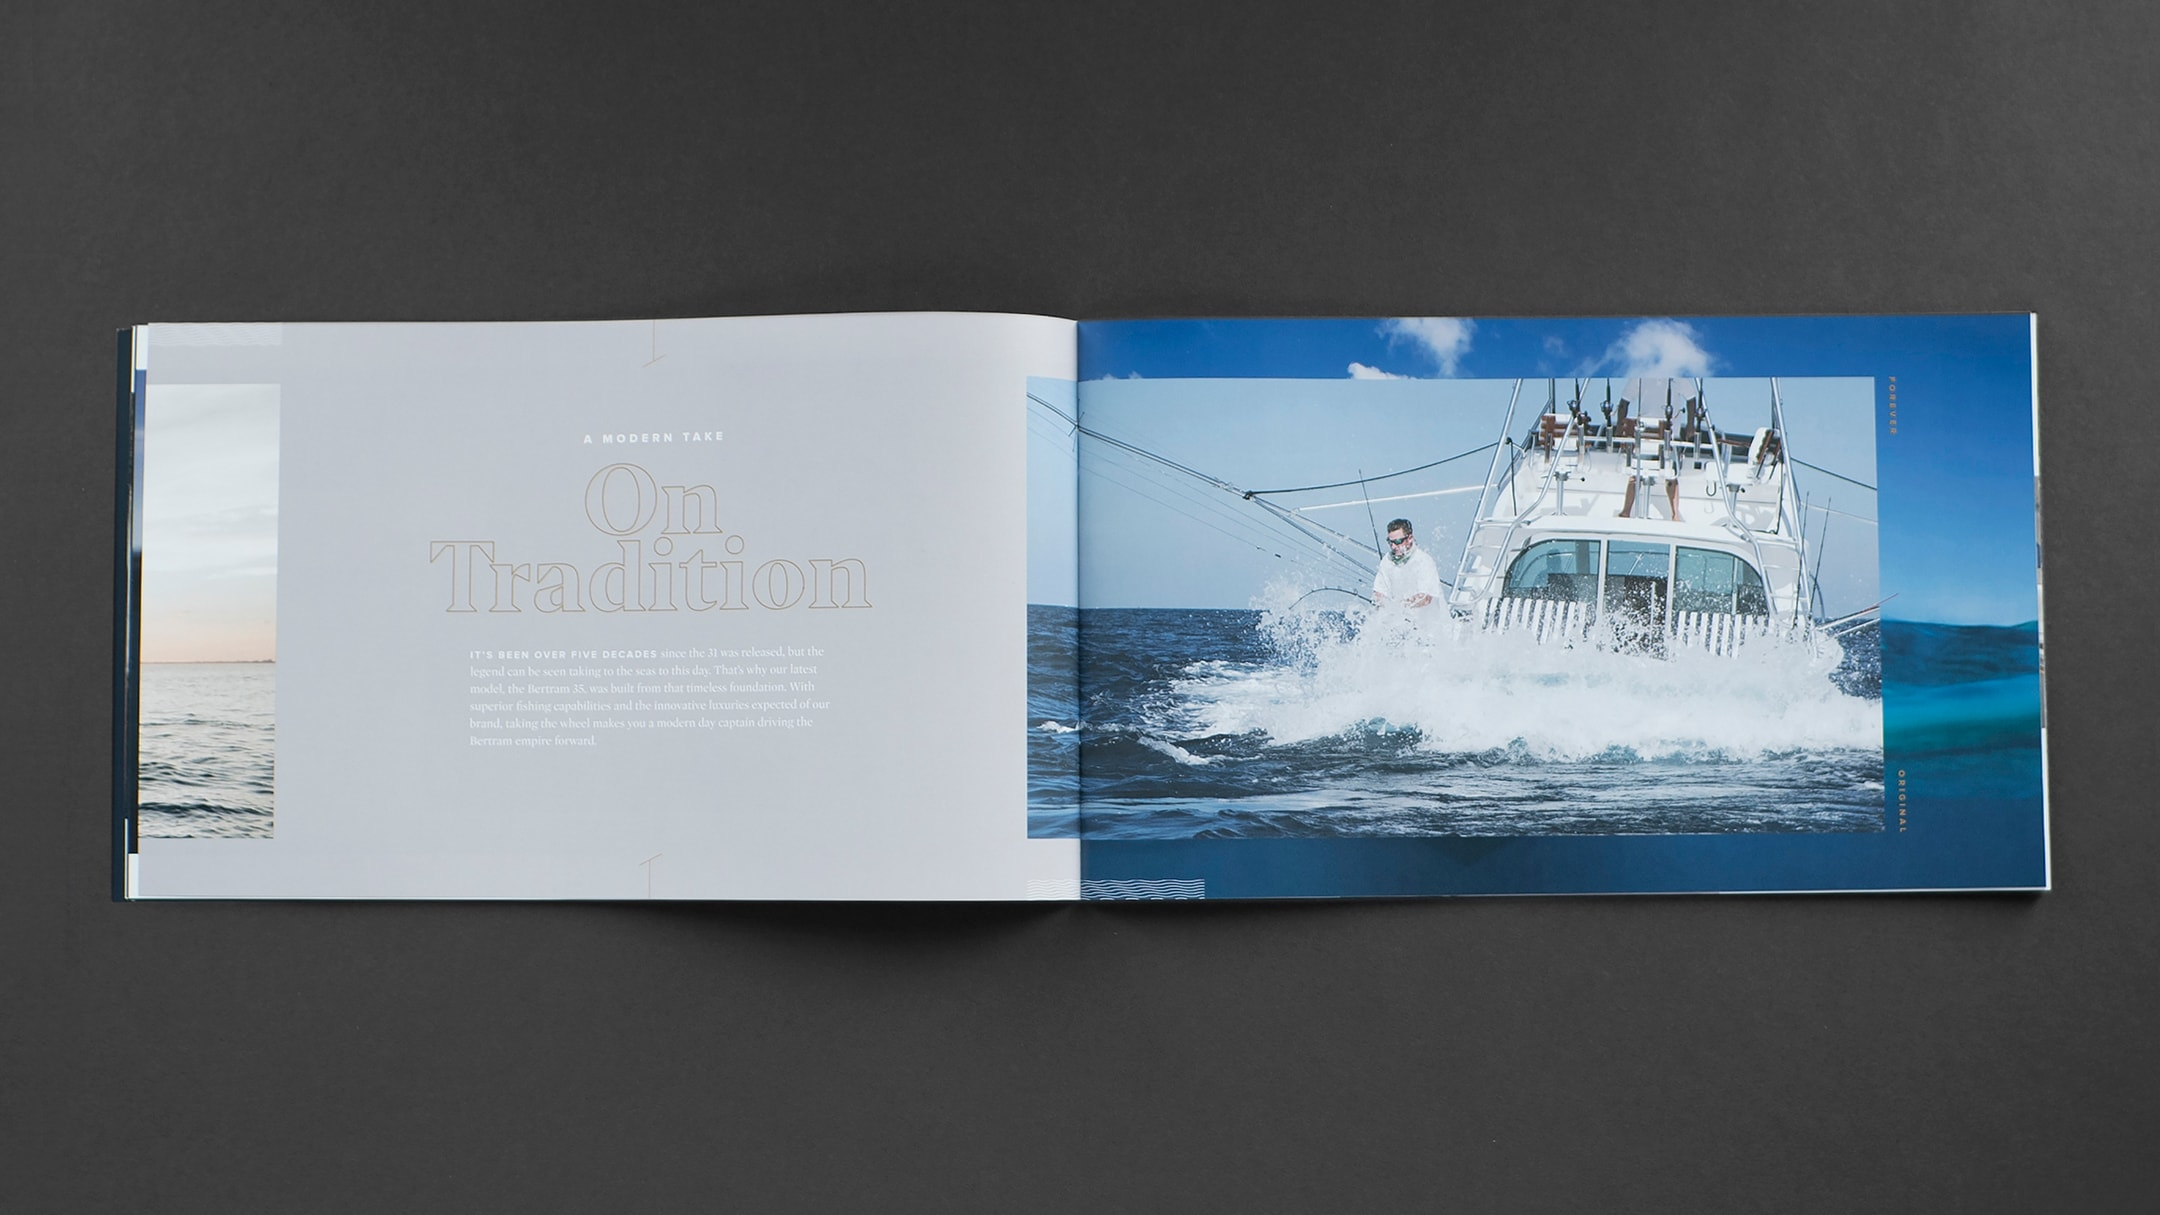 Bertram brand booklet - an example of collateral used in the boat advertising.